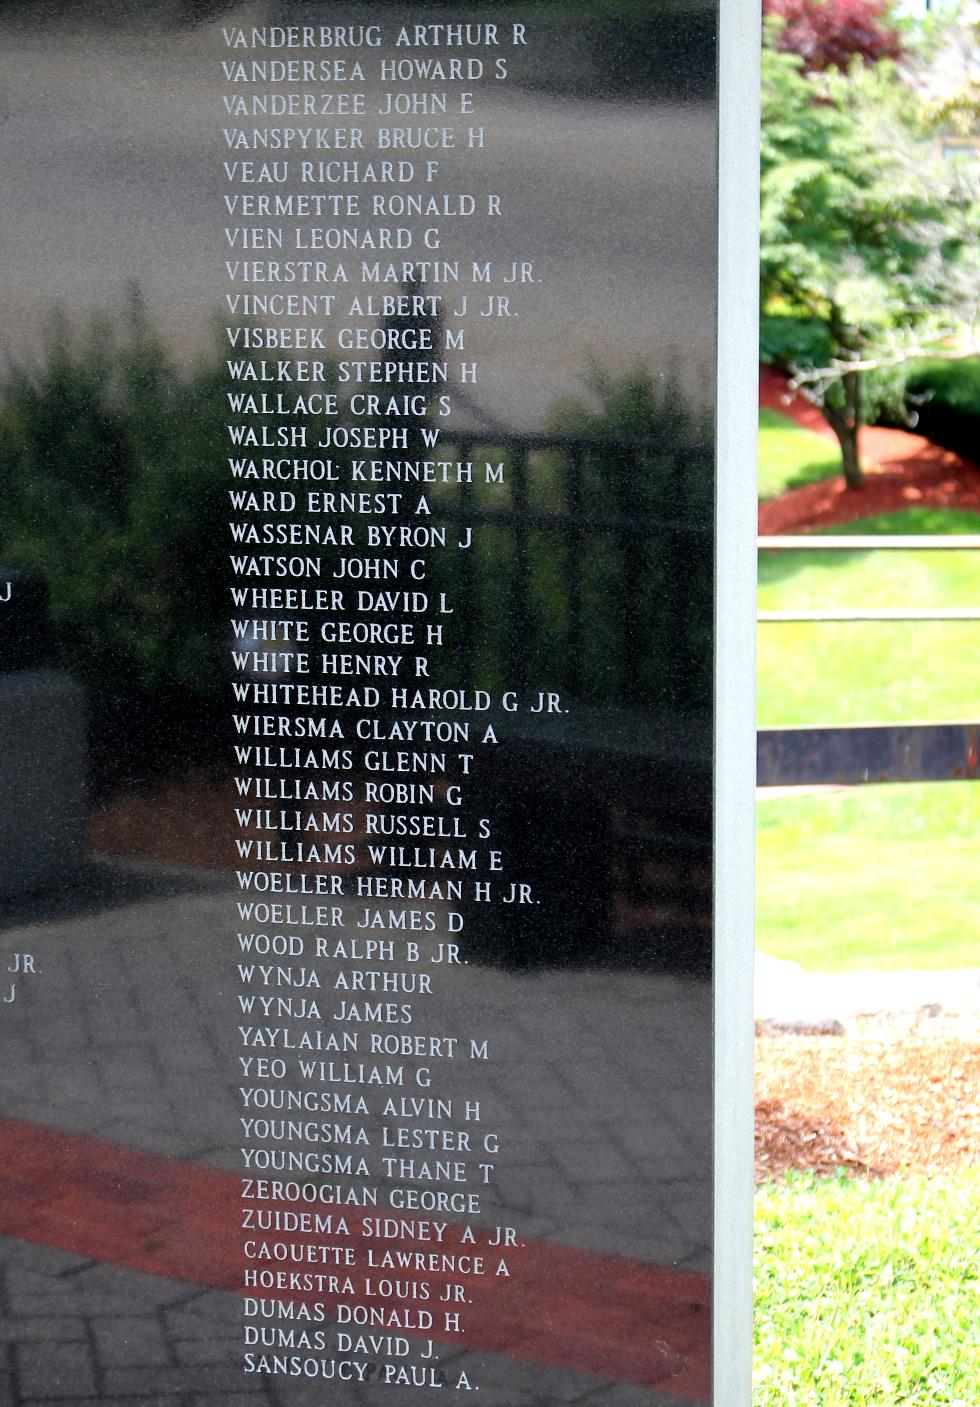 Northbridge Massachusetts Vietnam War Veterans Memorial